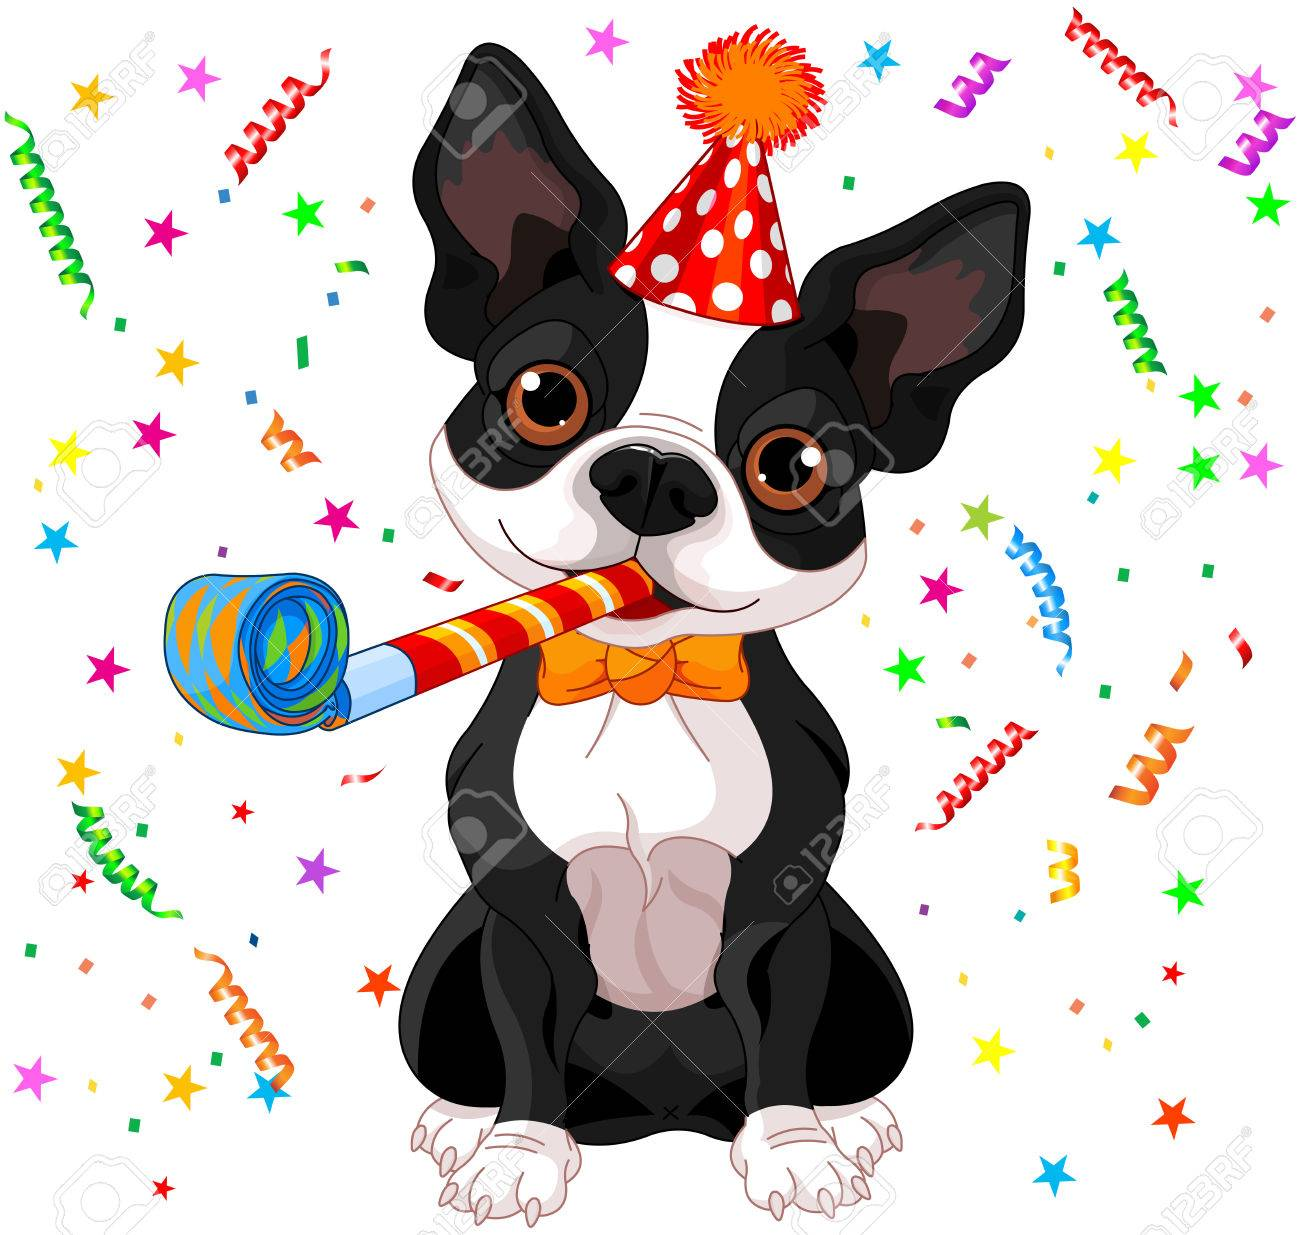 Randonnée avec son chien - Page 3 35588778-illustration-of-cute-boston-terrier-celebrating